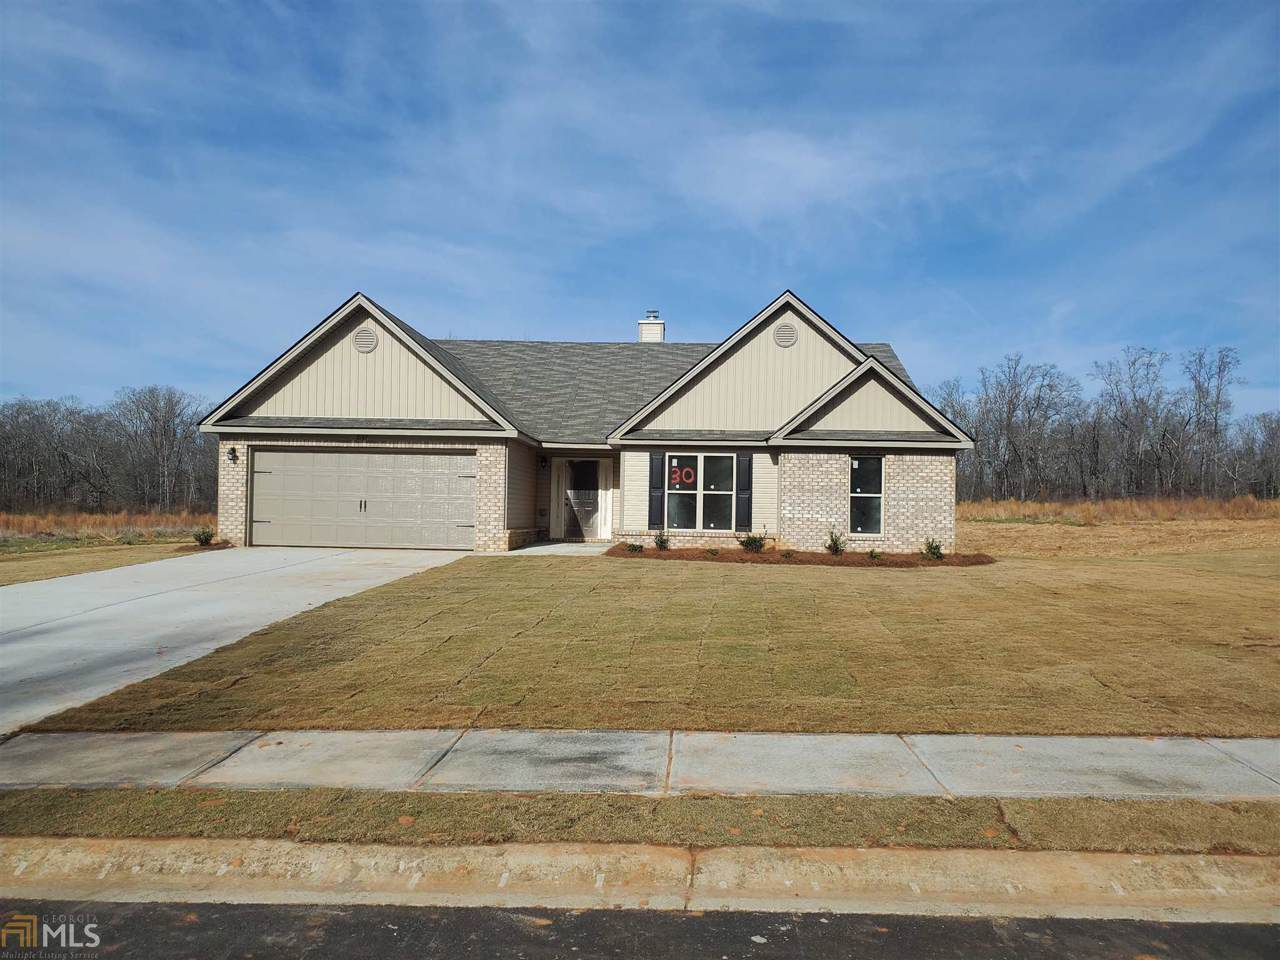 2137 Willow Park Dr - Photo 1